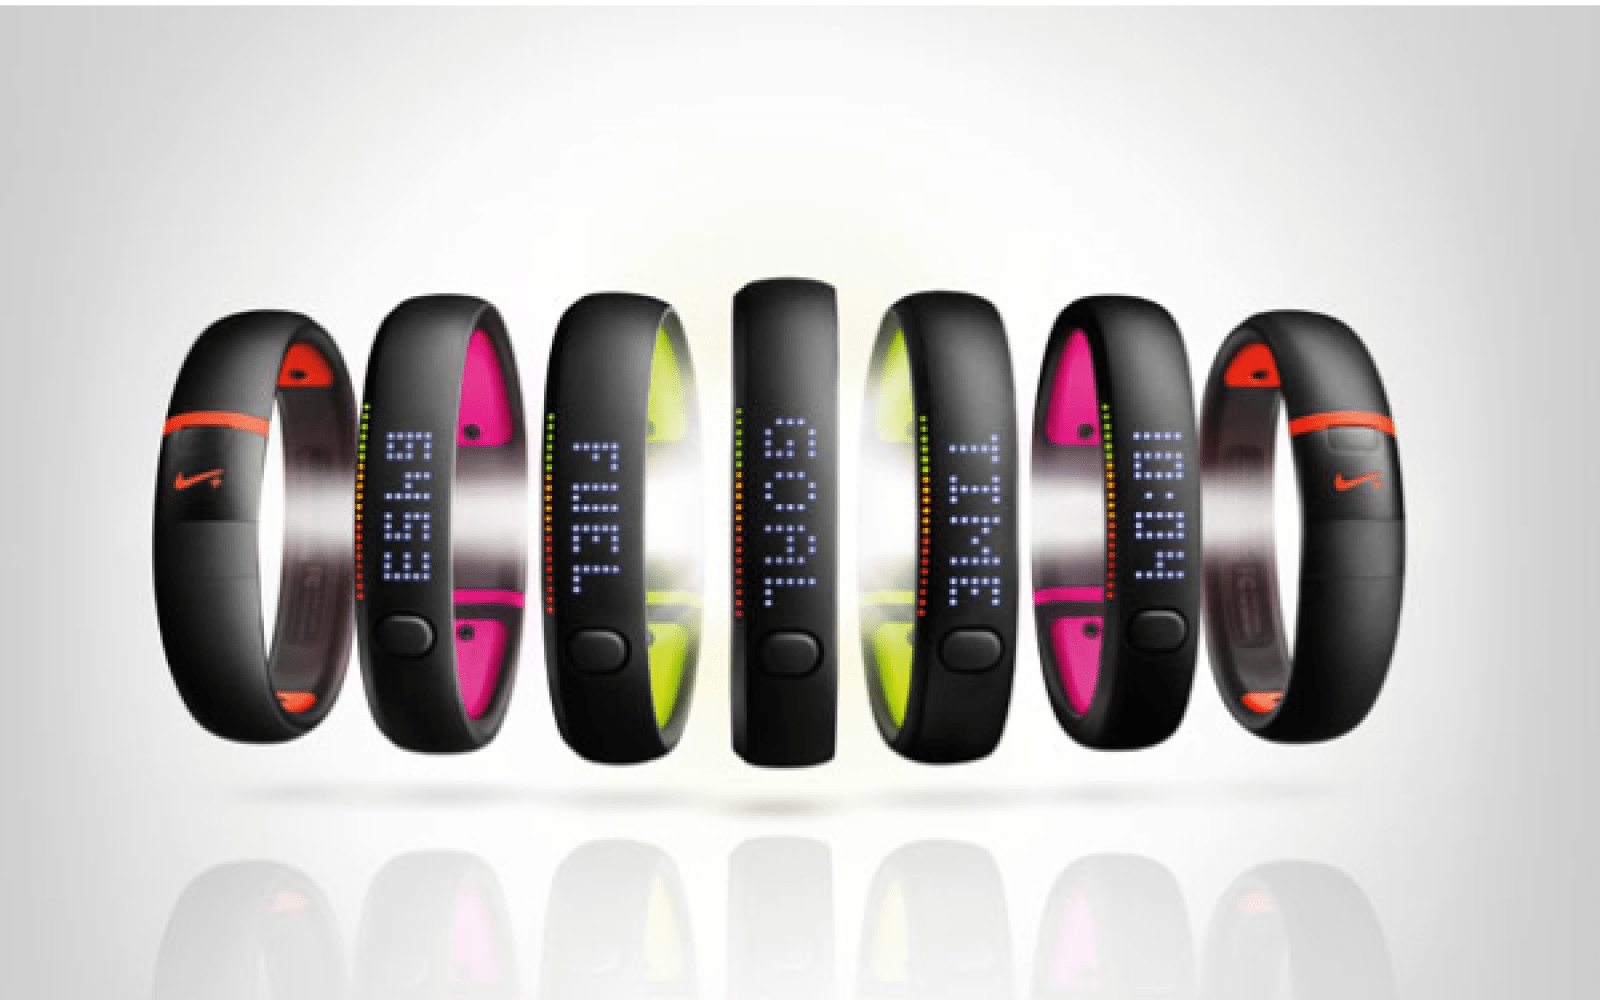 Review: Nike+ FuelBand SE, a smart fitness band that encourages you to get active